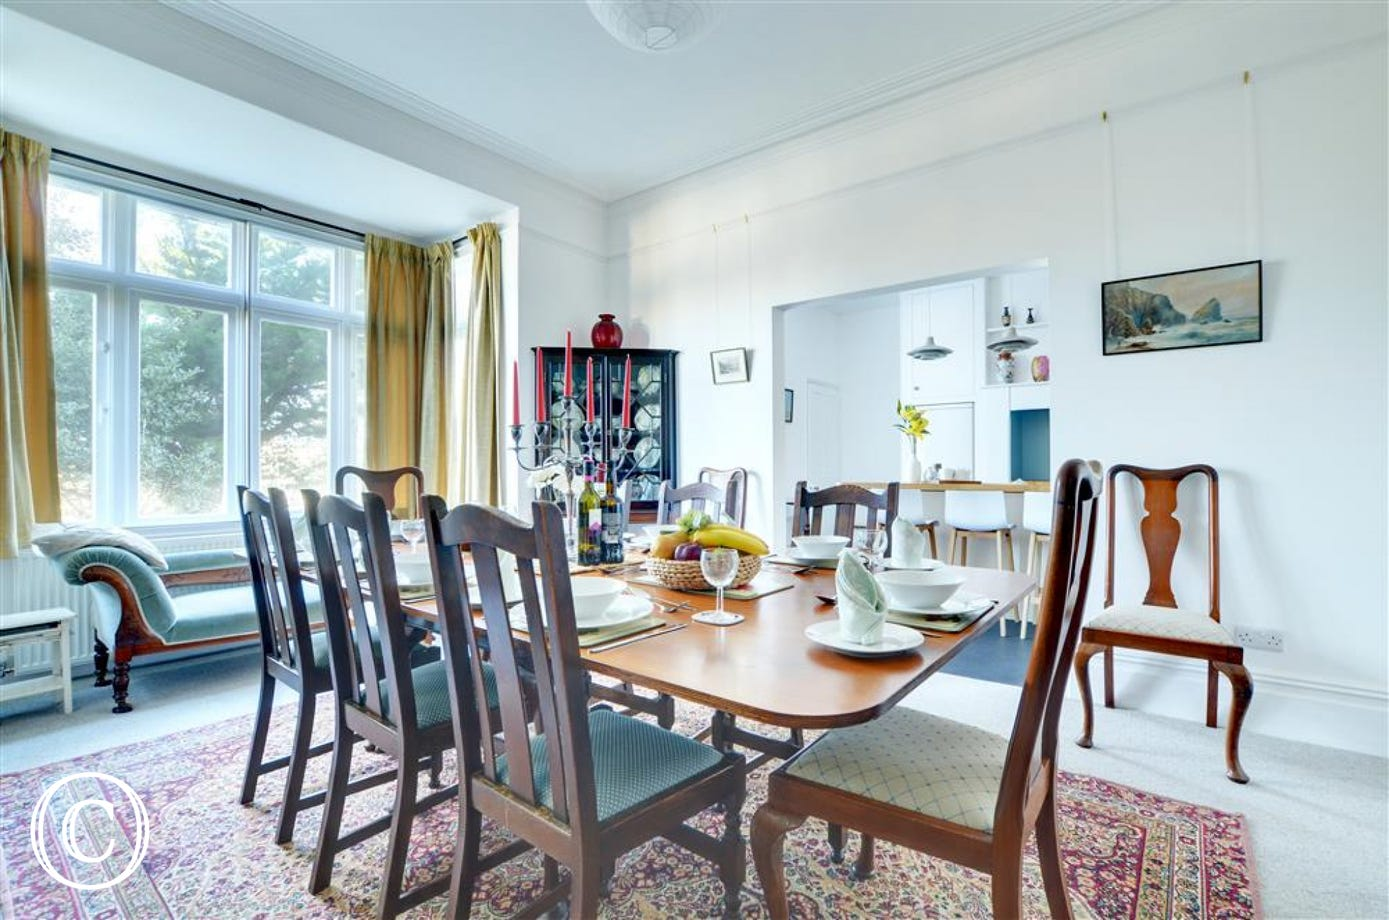 A fabulous space to entertain friends and family in this elegant dining room with kitchen adjacent